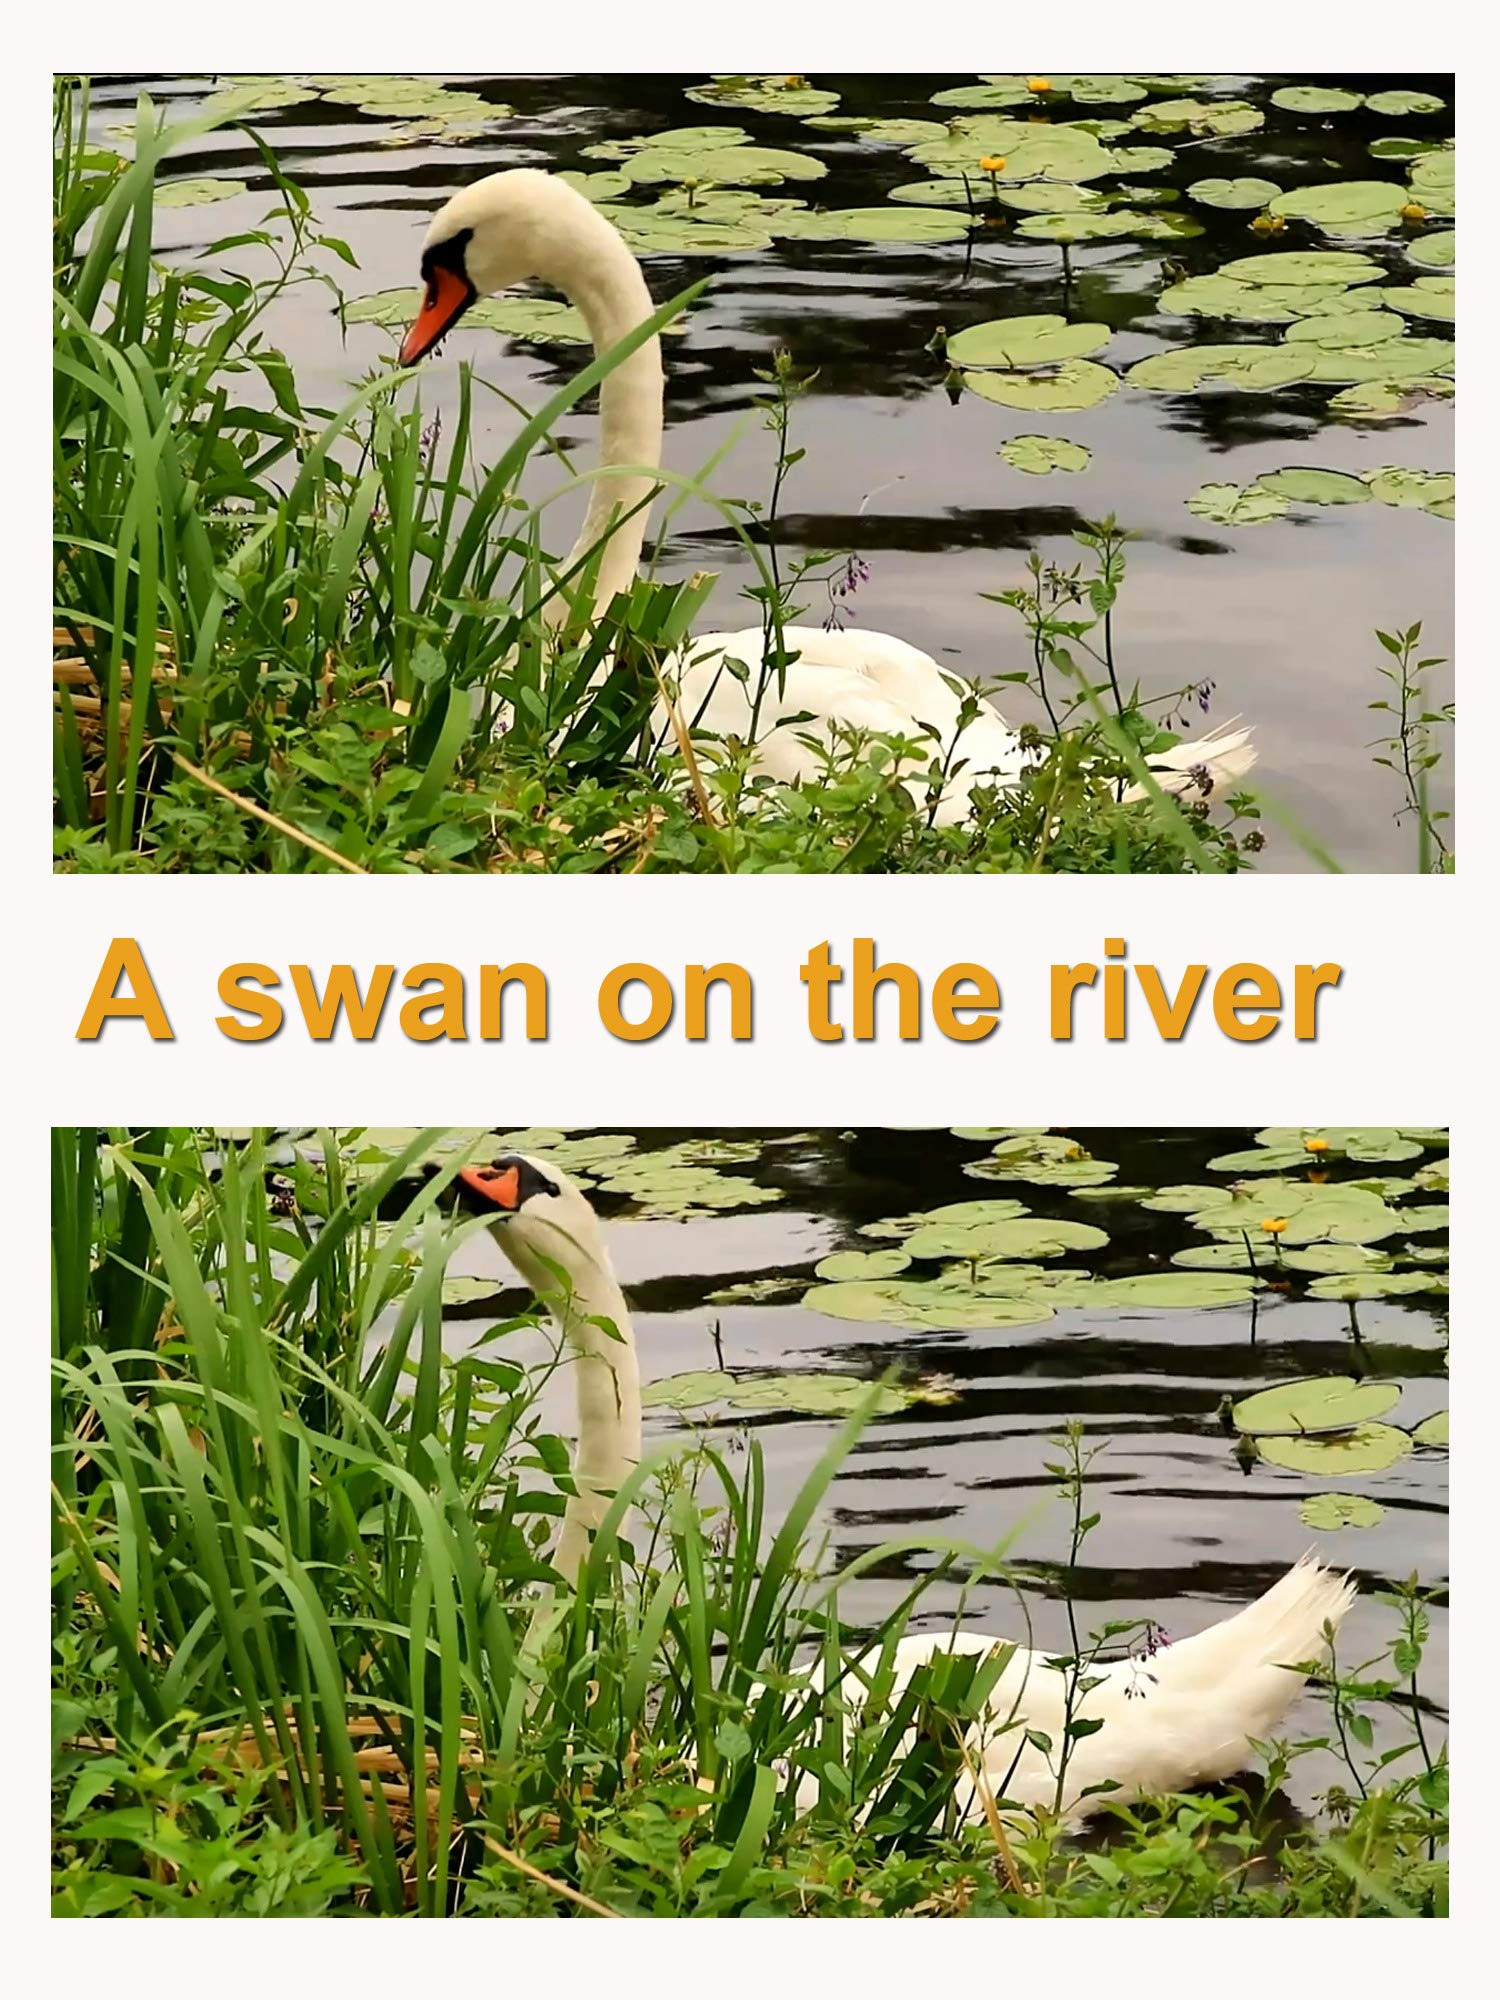 A swan on the river